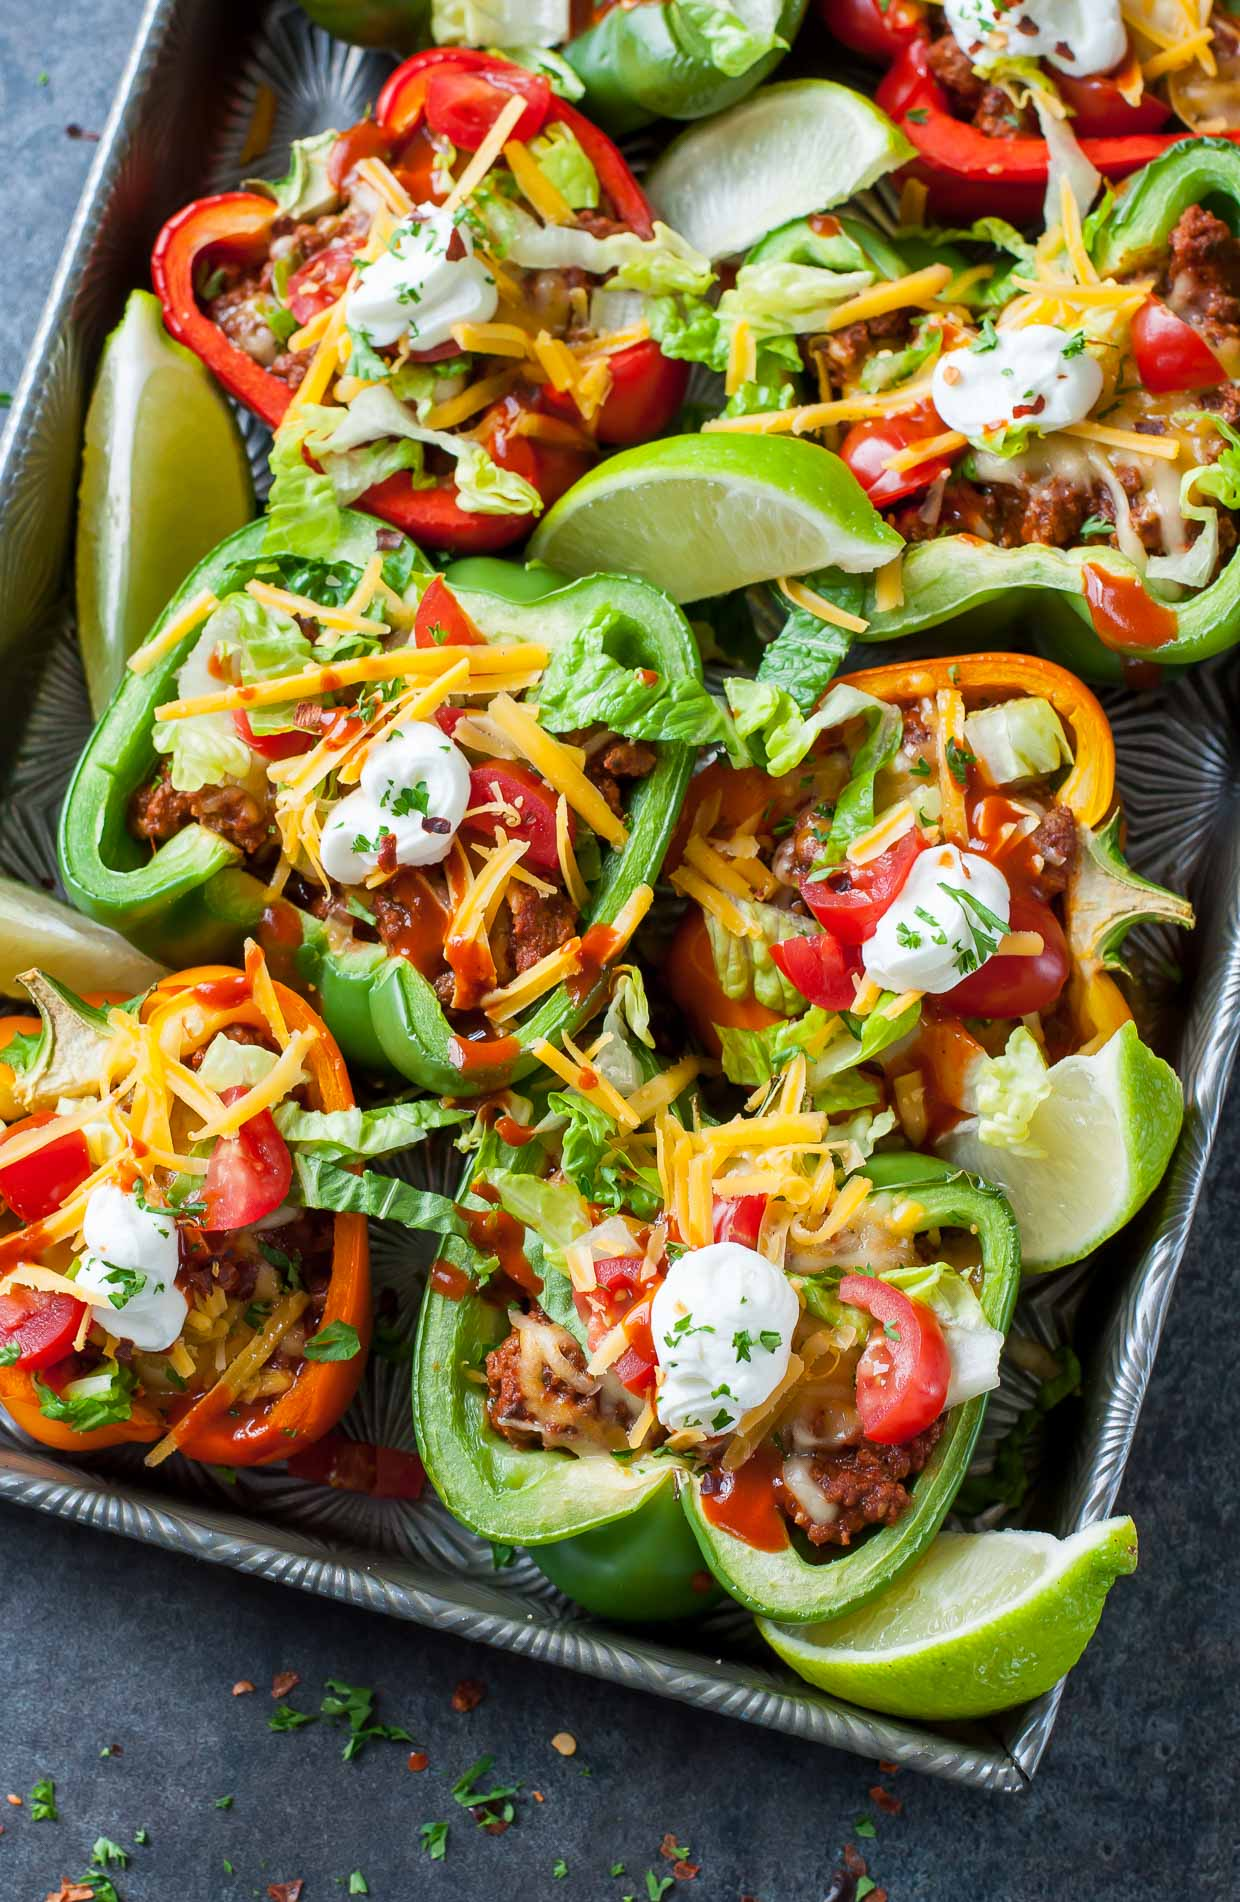 Take taco night to the next level with these Baked Bell Pepper Tacos!